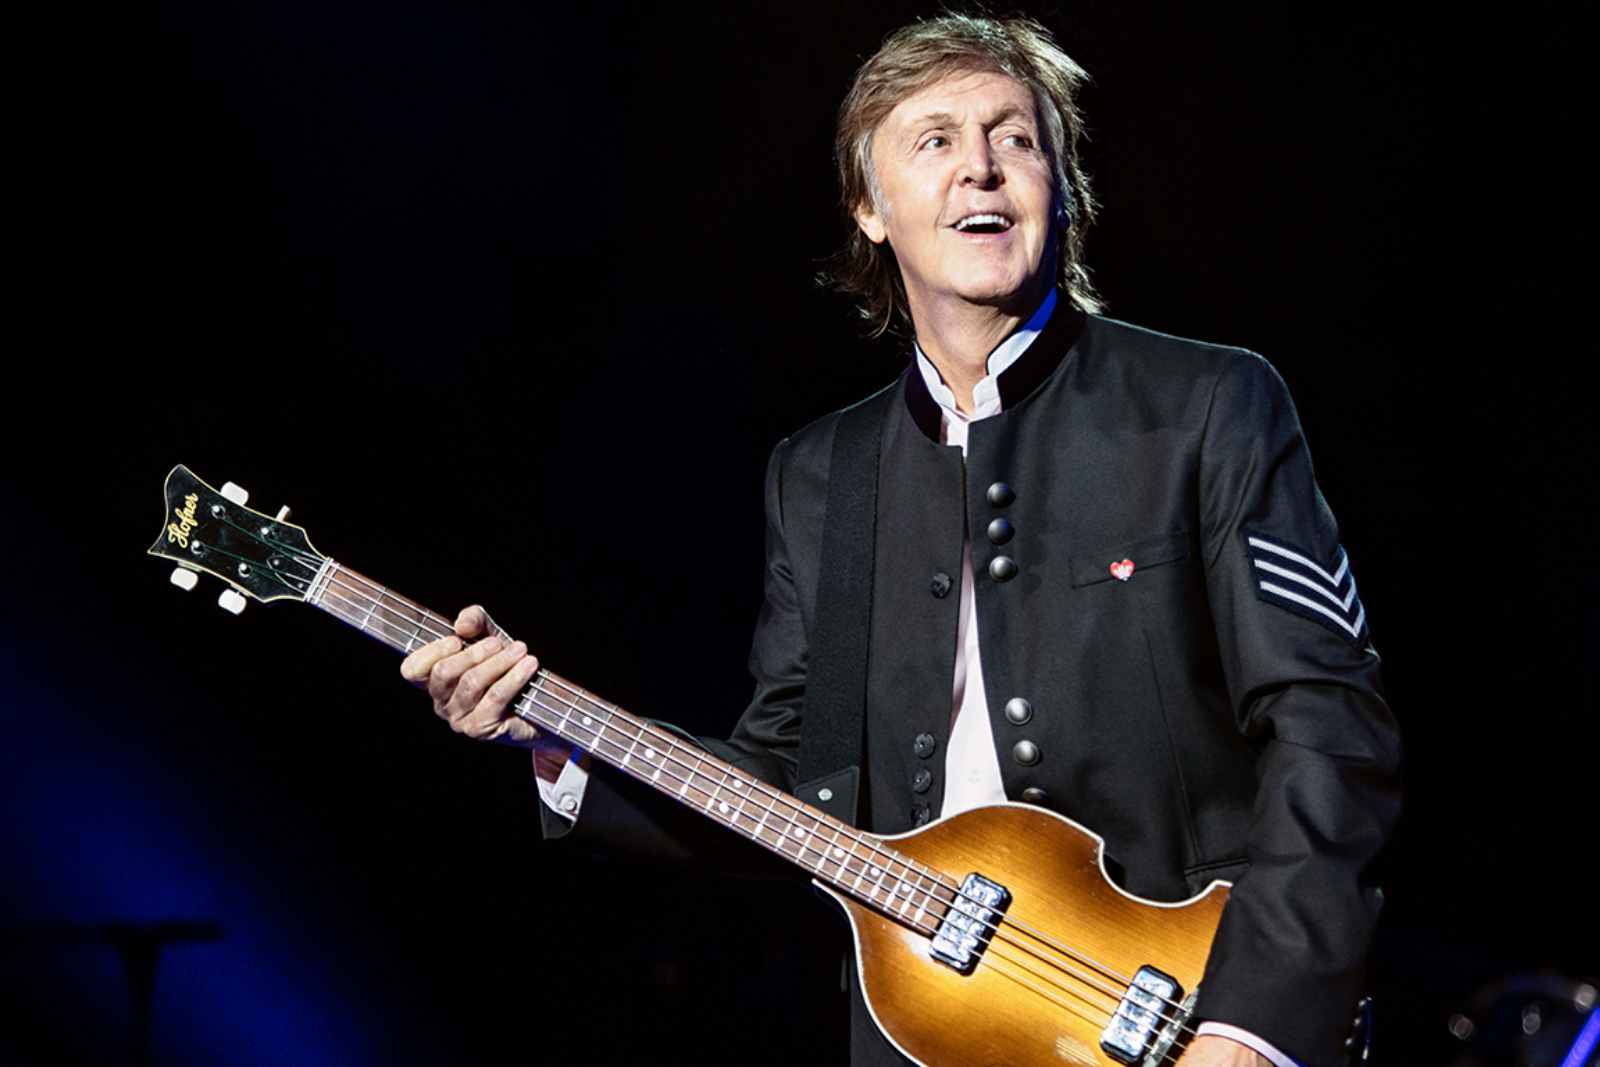 Paul McCartney concierto en Barcelona